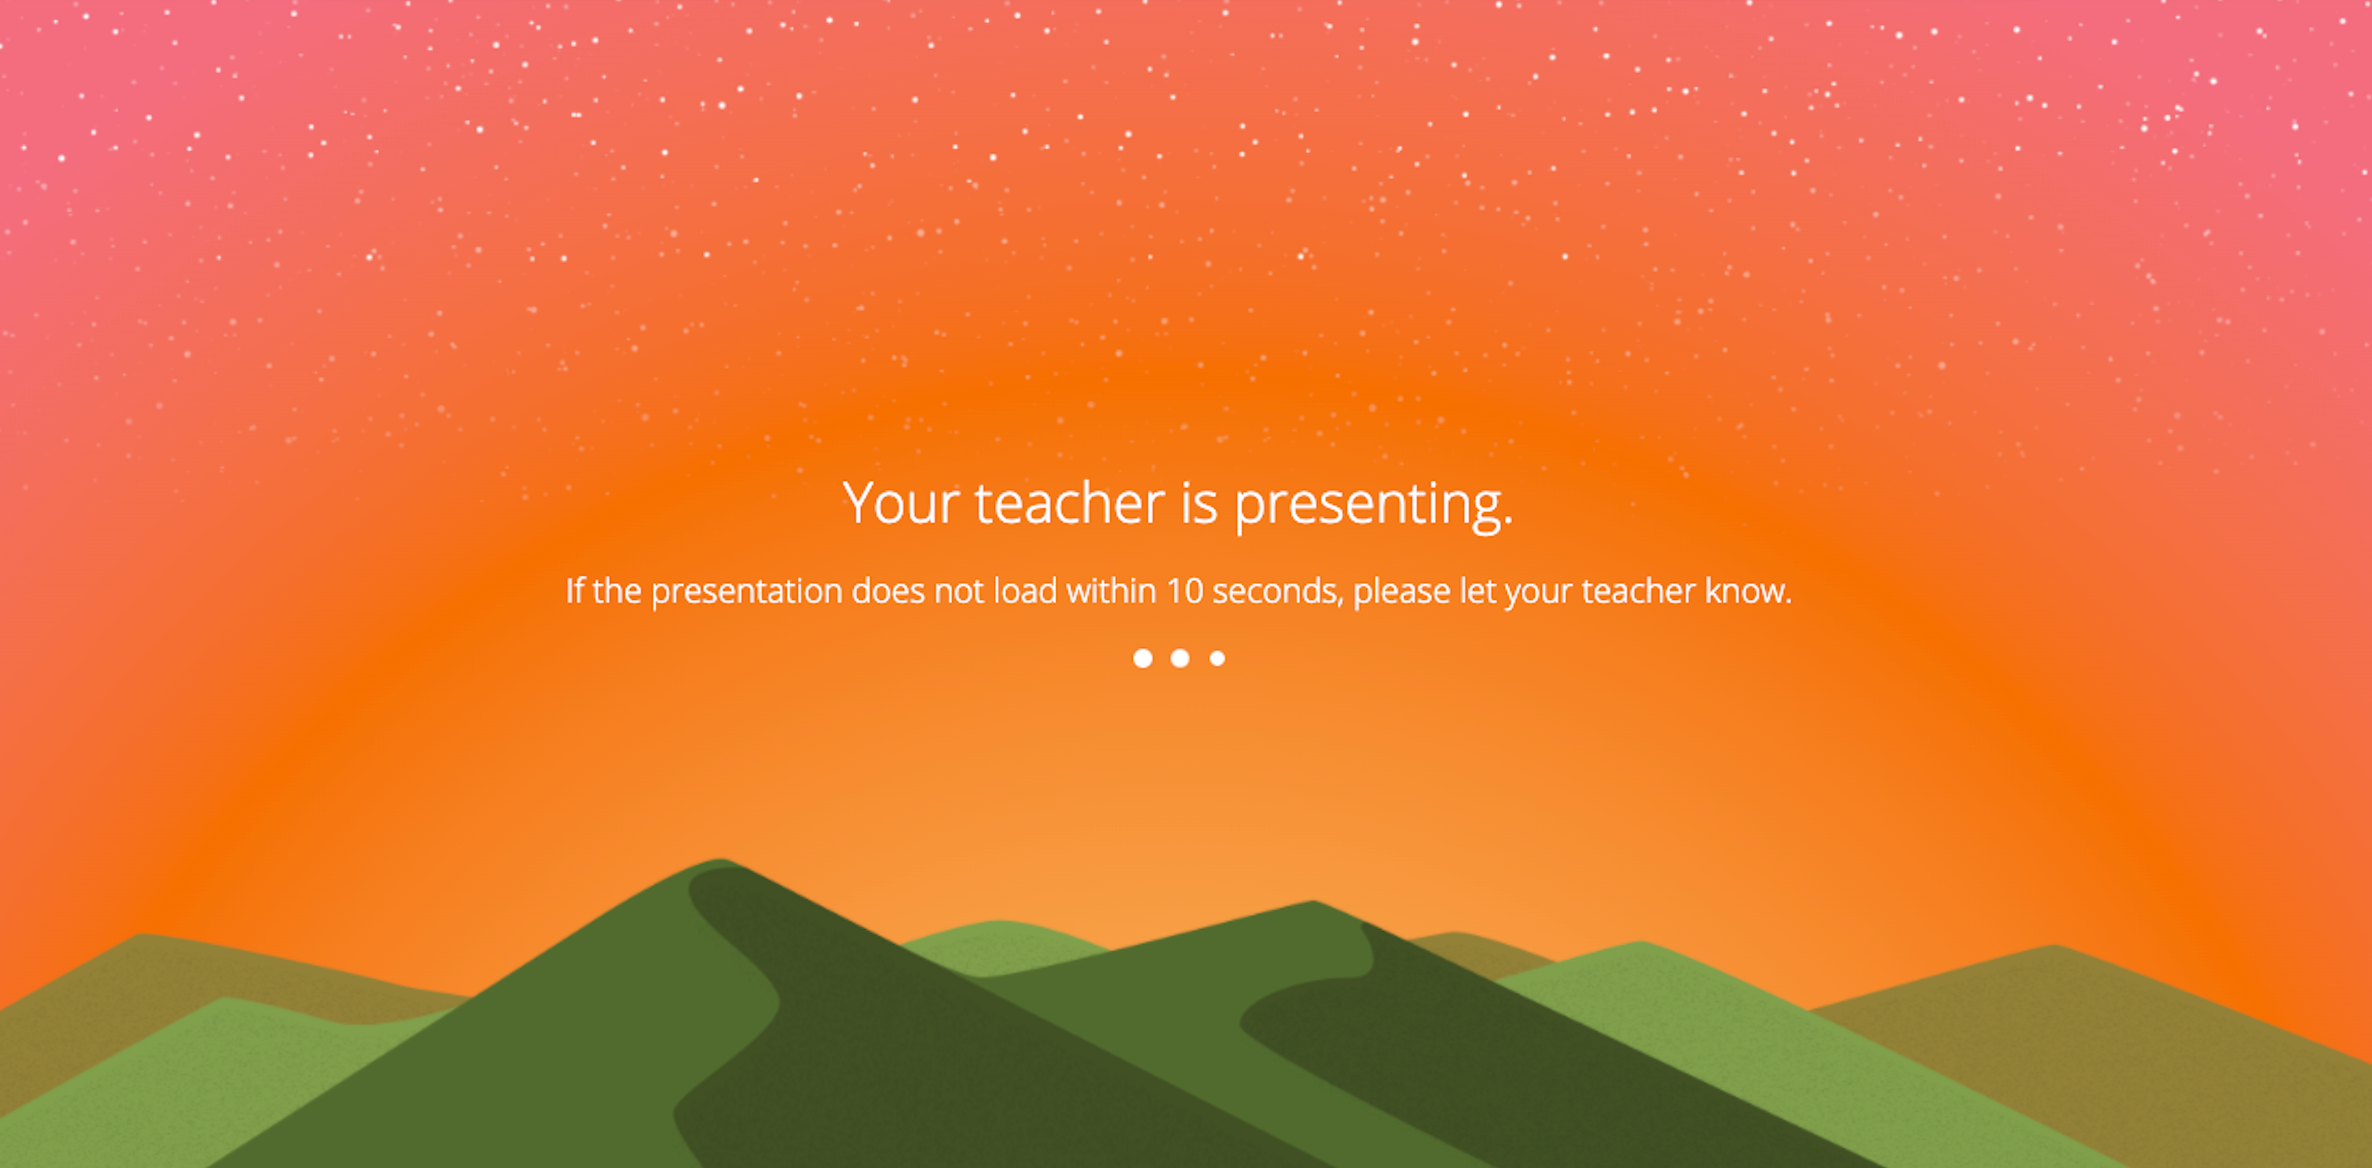 Teacher_is_presenting_student_view.png